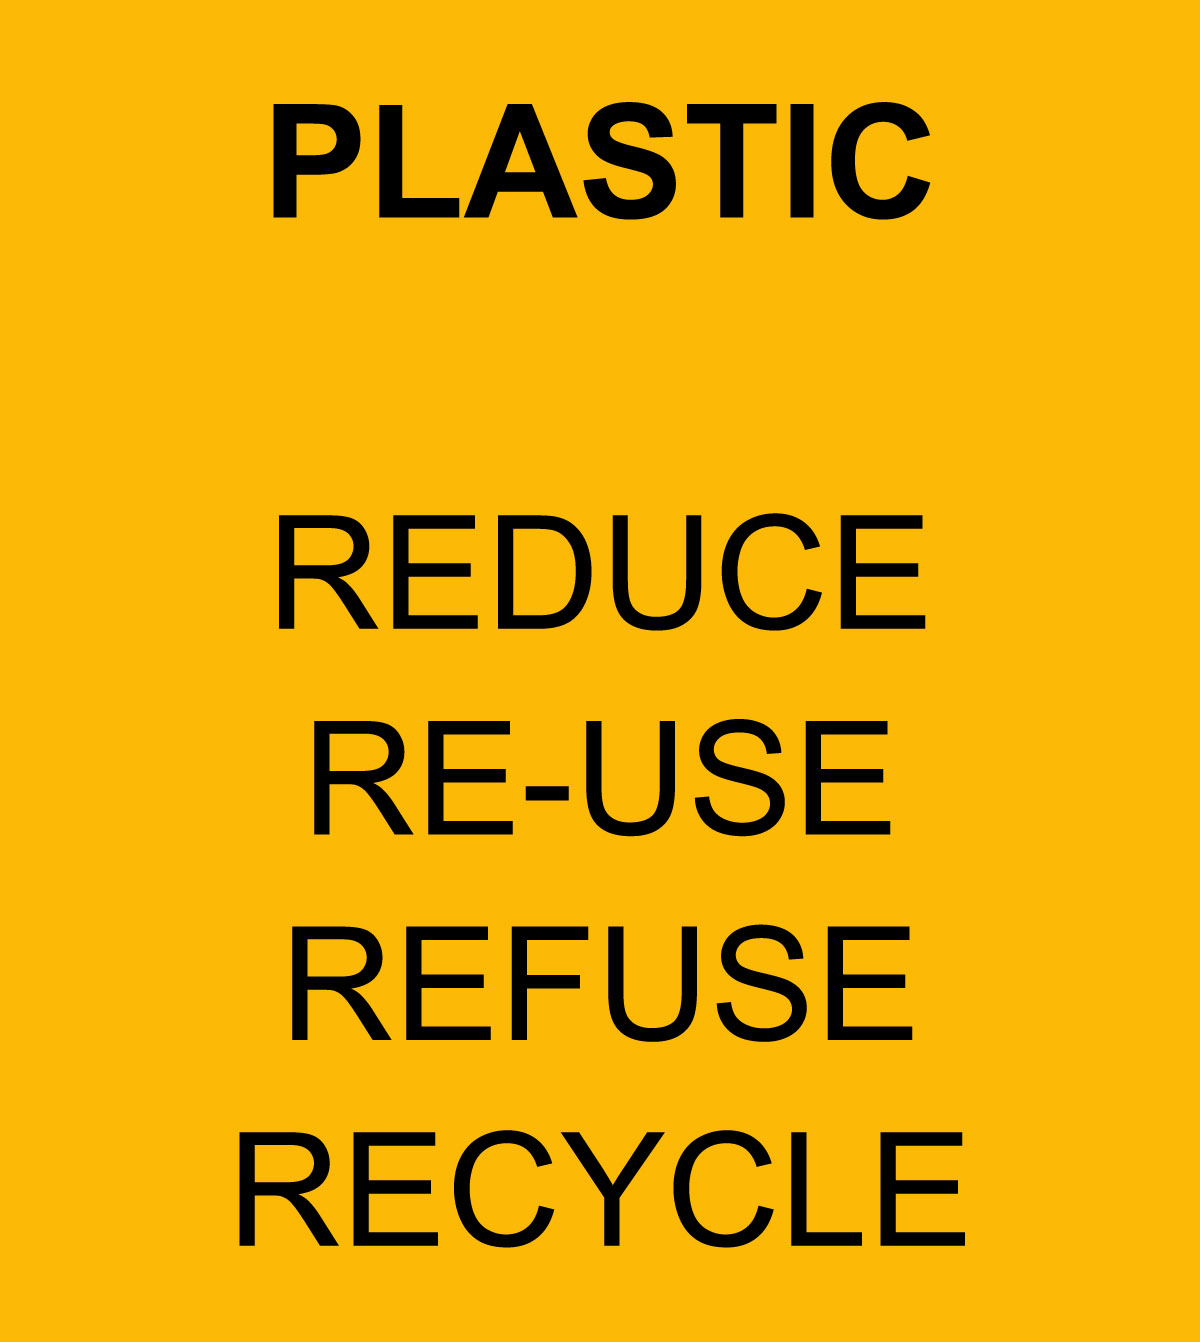 PLASTIC - reduce, re-use, refuse, recycle